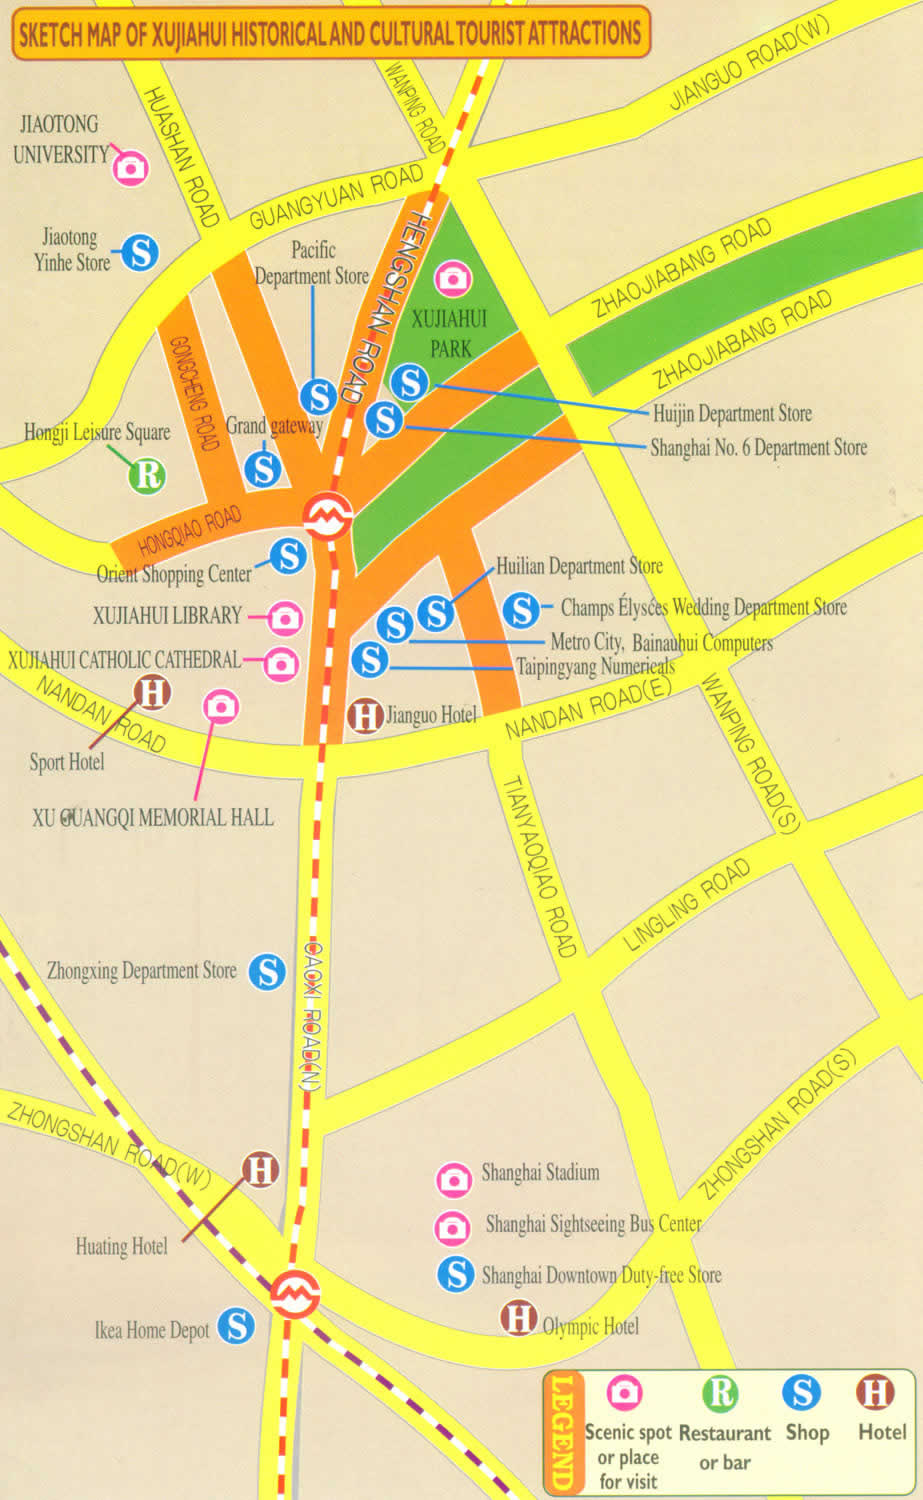 Sketch Map of Xujiahui History and Cultural Tourist attractions ...